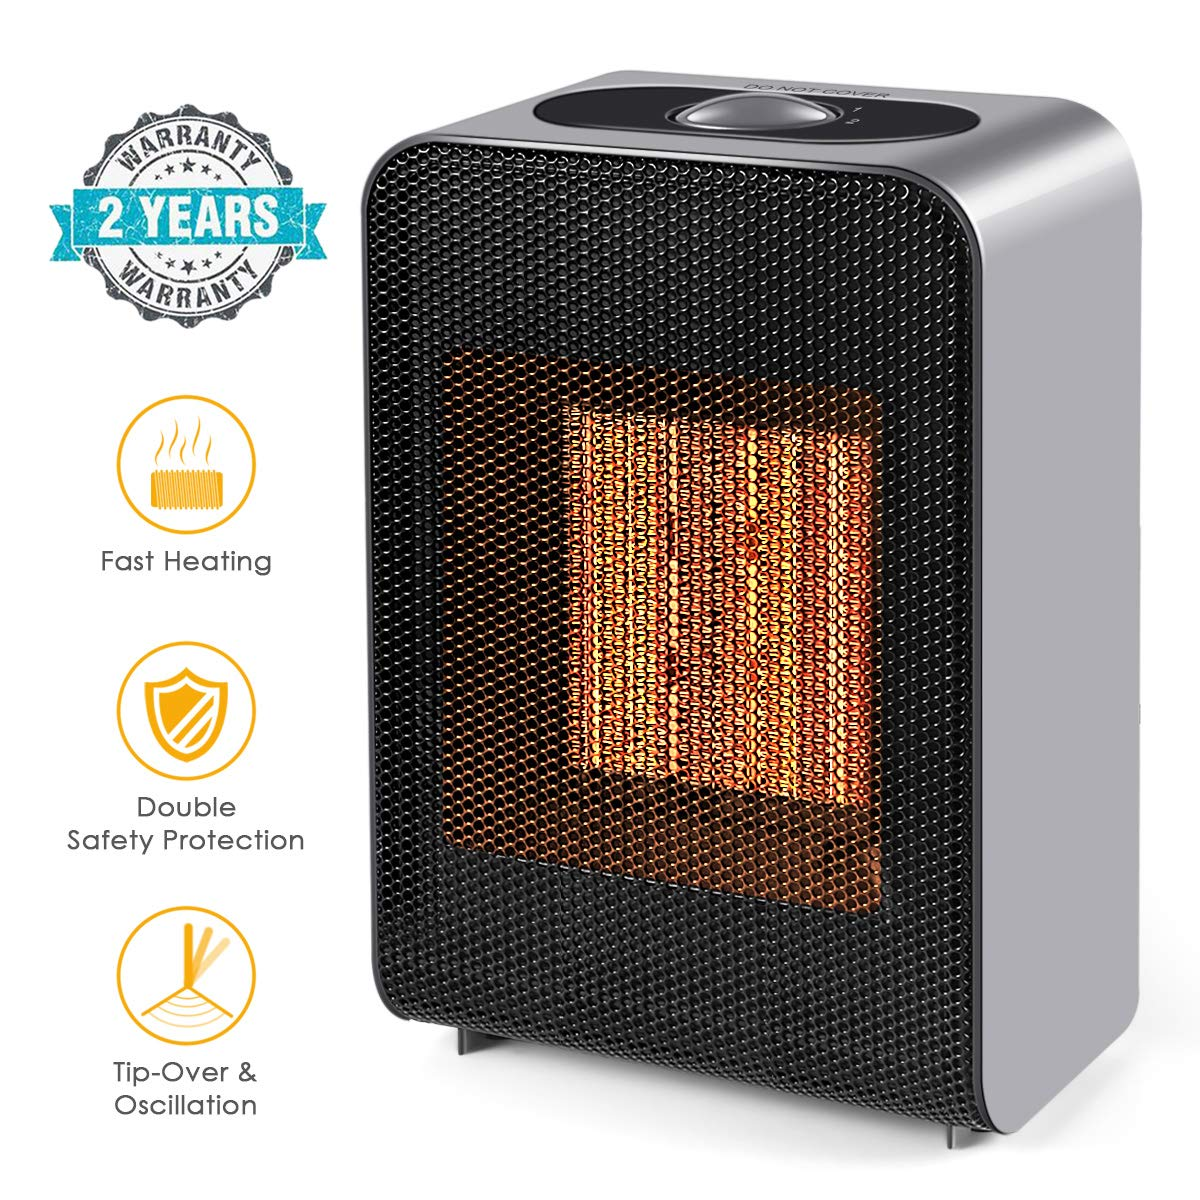 Portable Space Heater, Indoor 750W/1500W Ceramic Electric Heater for Home/Office/Bedroom and Bathroom with Adjustable Thermostat, Personal Desk Heater